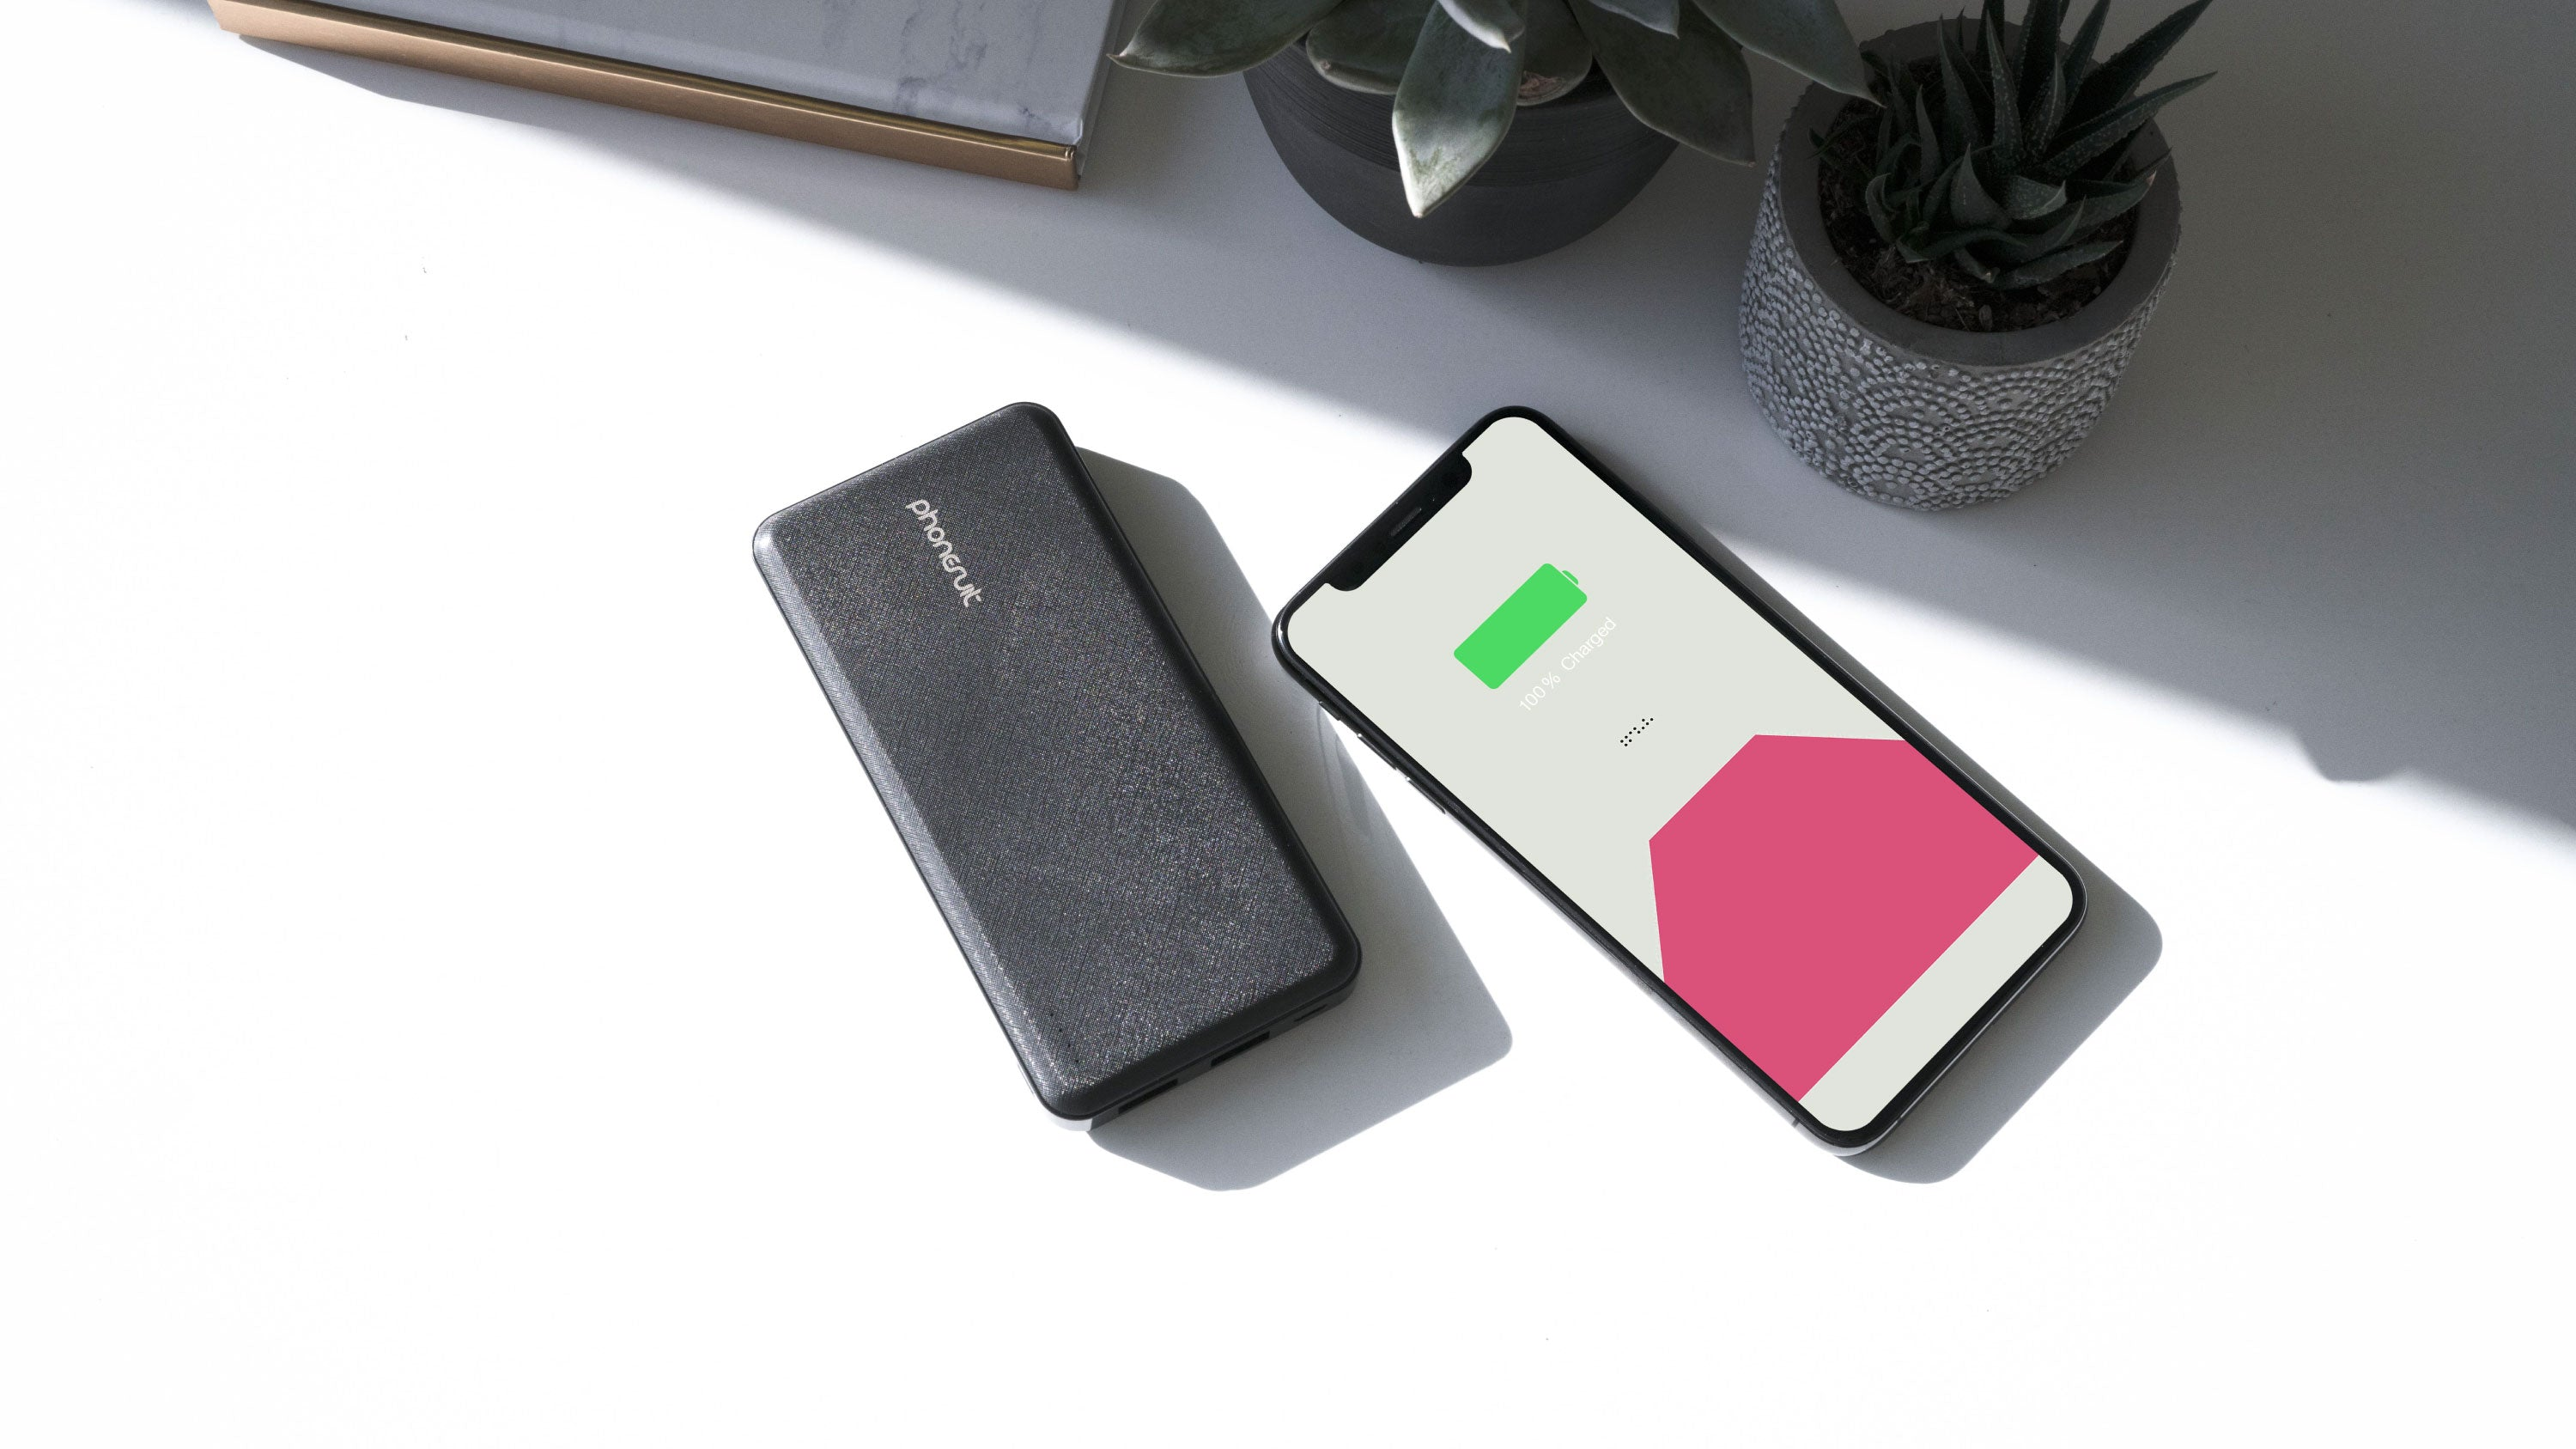 Energy Core LT Battery Pack 10,000 mAh for iPhone, Samsung & More